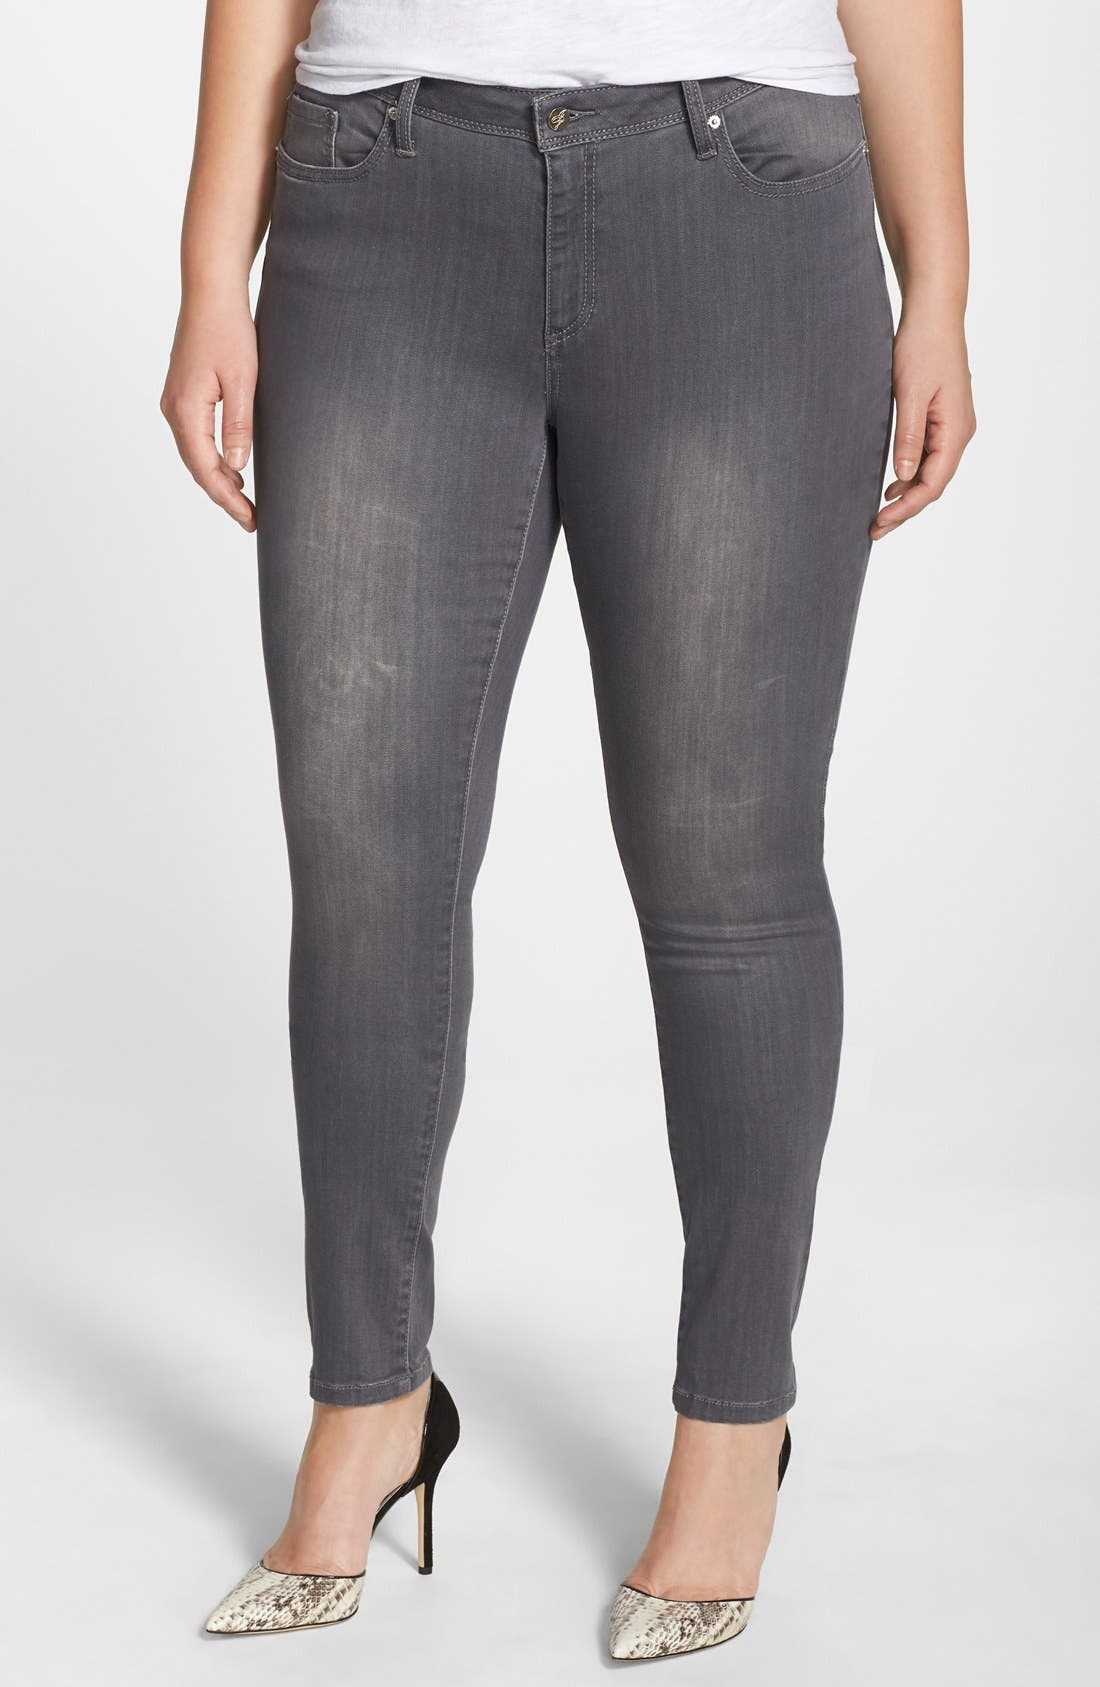 Poetic Justice Maya Ripped Stretch Skinny Jeans (Plus Size ...